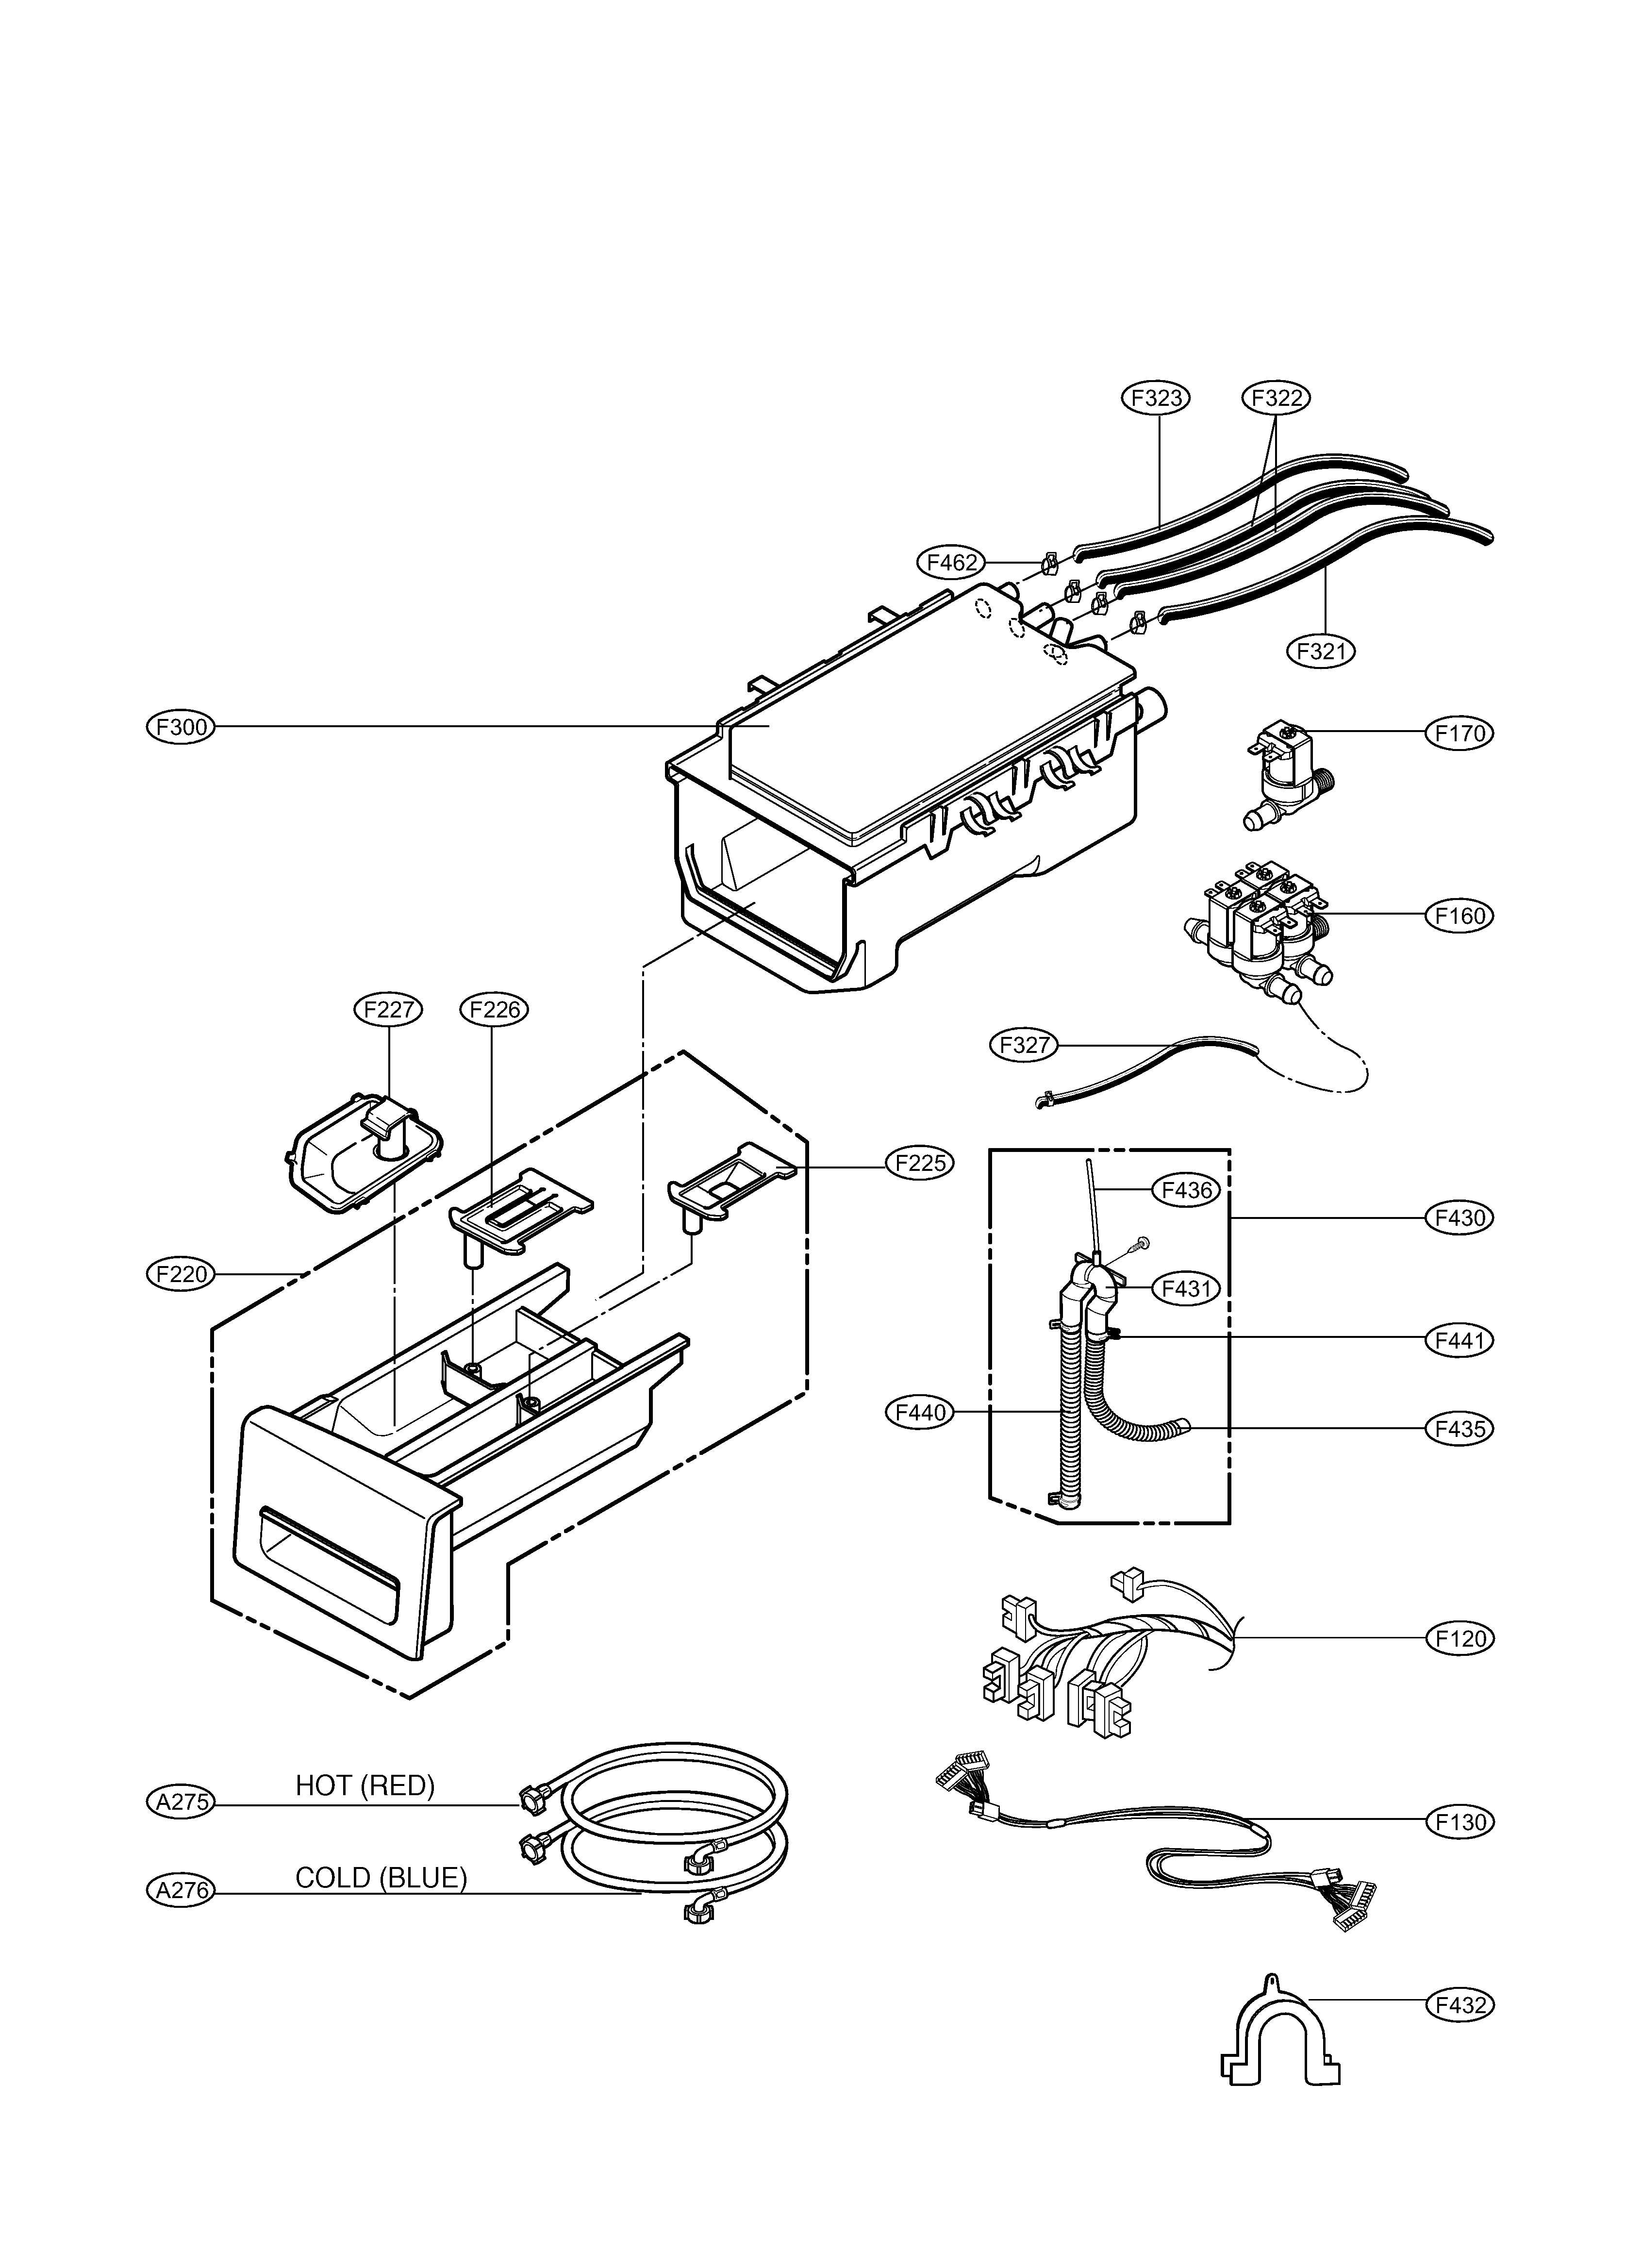 Lg Dryer Wiring Diagram Tromm Washer Parts Image Hi My Combo Is